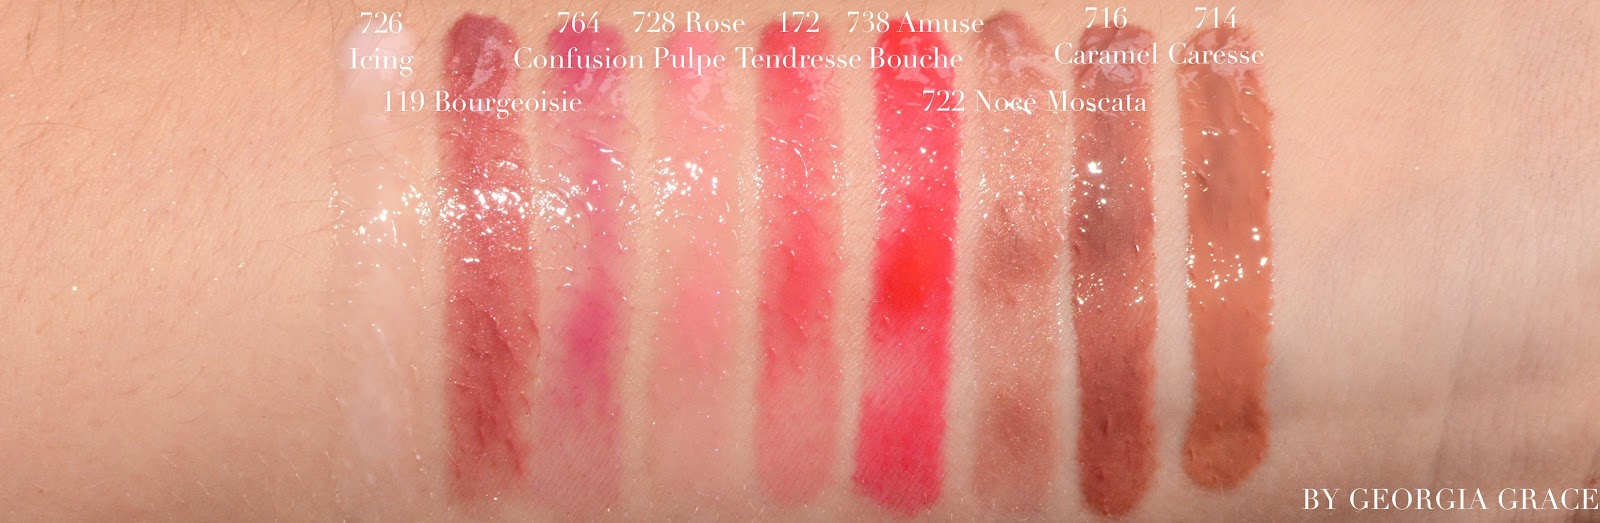 chanel rouge coco gloss swatches review photos comparison icing bourgeoisie rose pulpe tendresse amuse bouche noce moscata caramel caresse